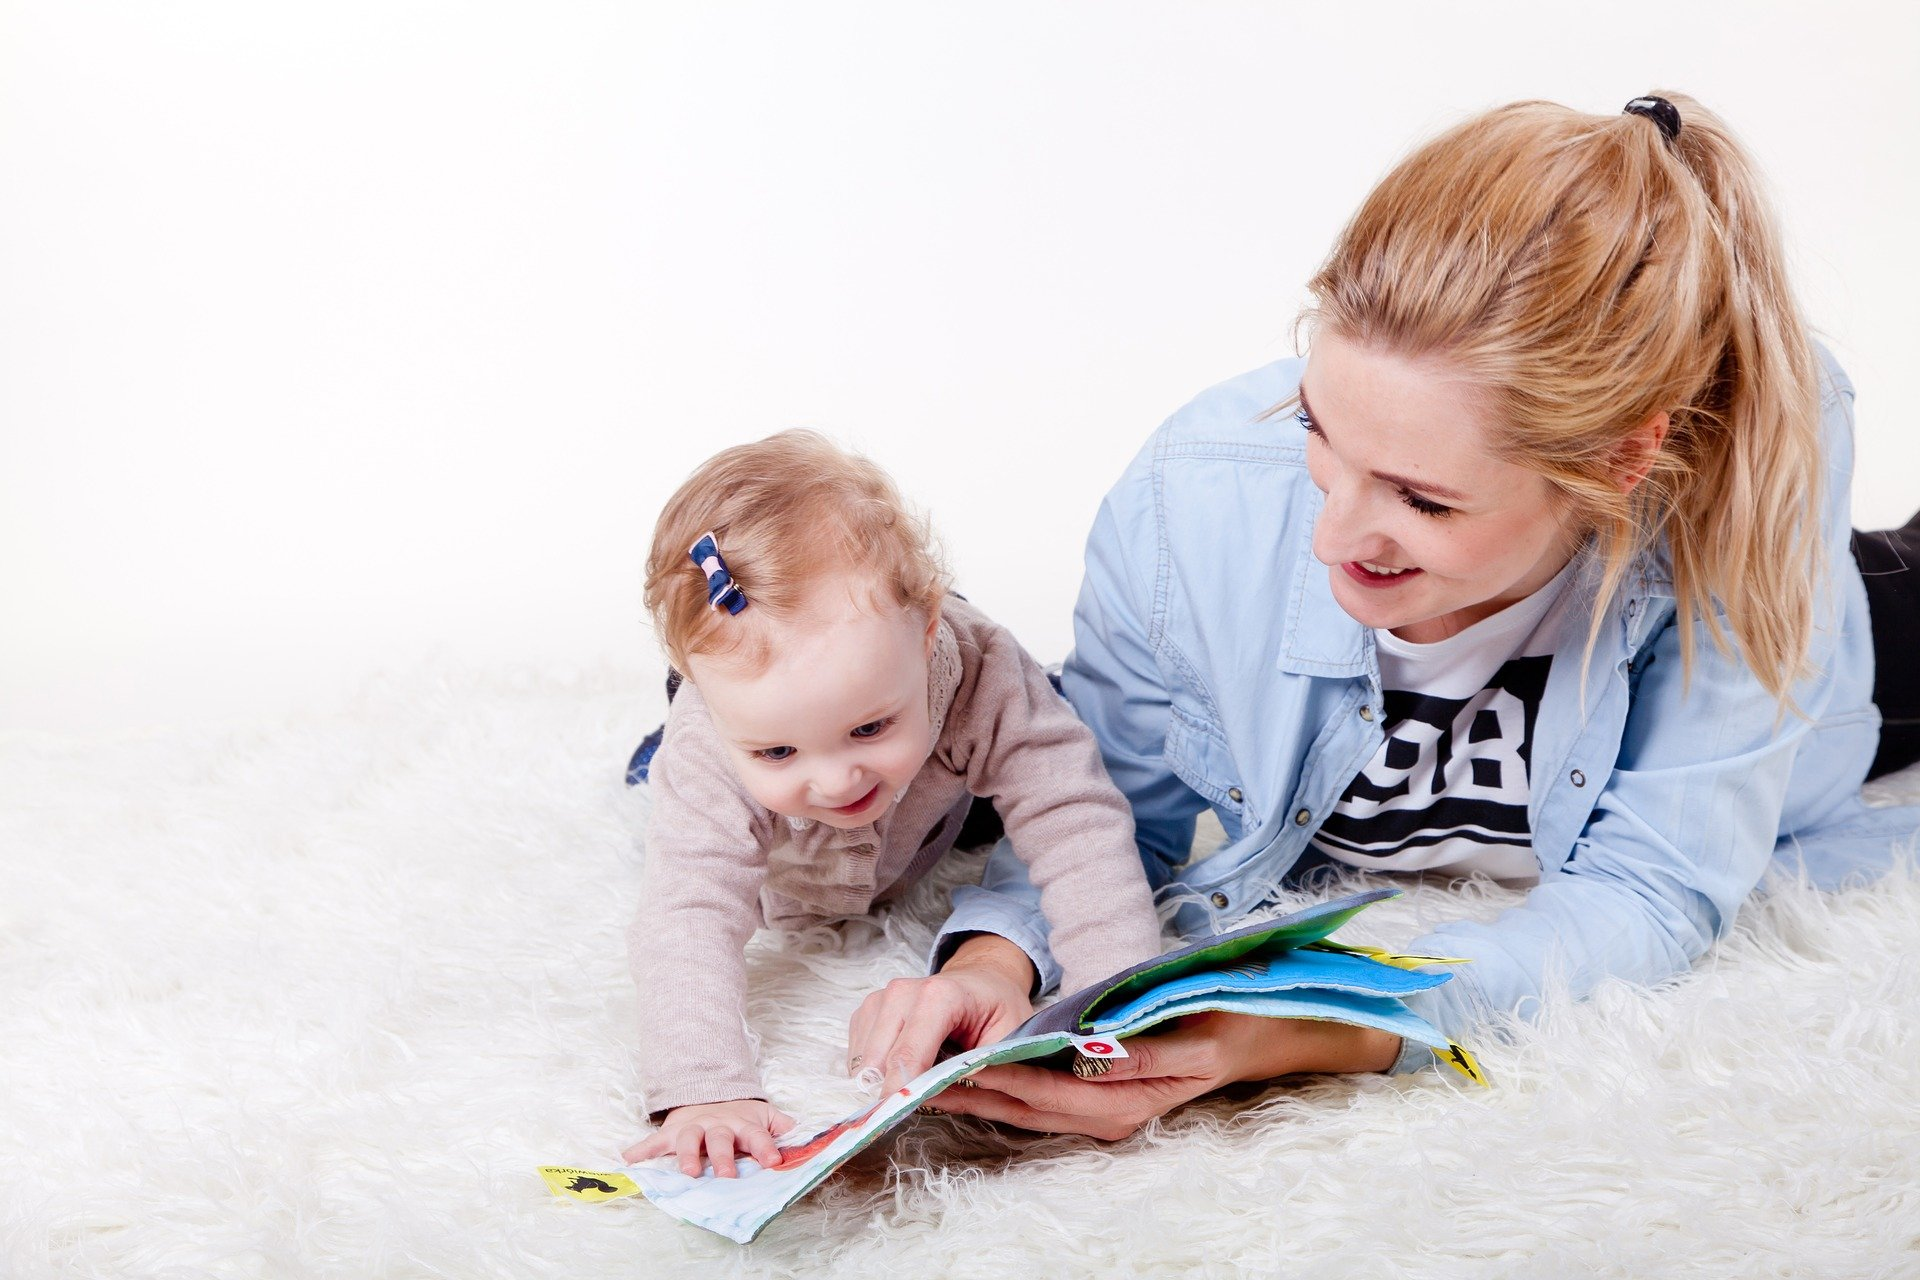 mum and baby tummy time. Baby has a book and mum is reading it